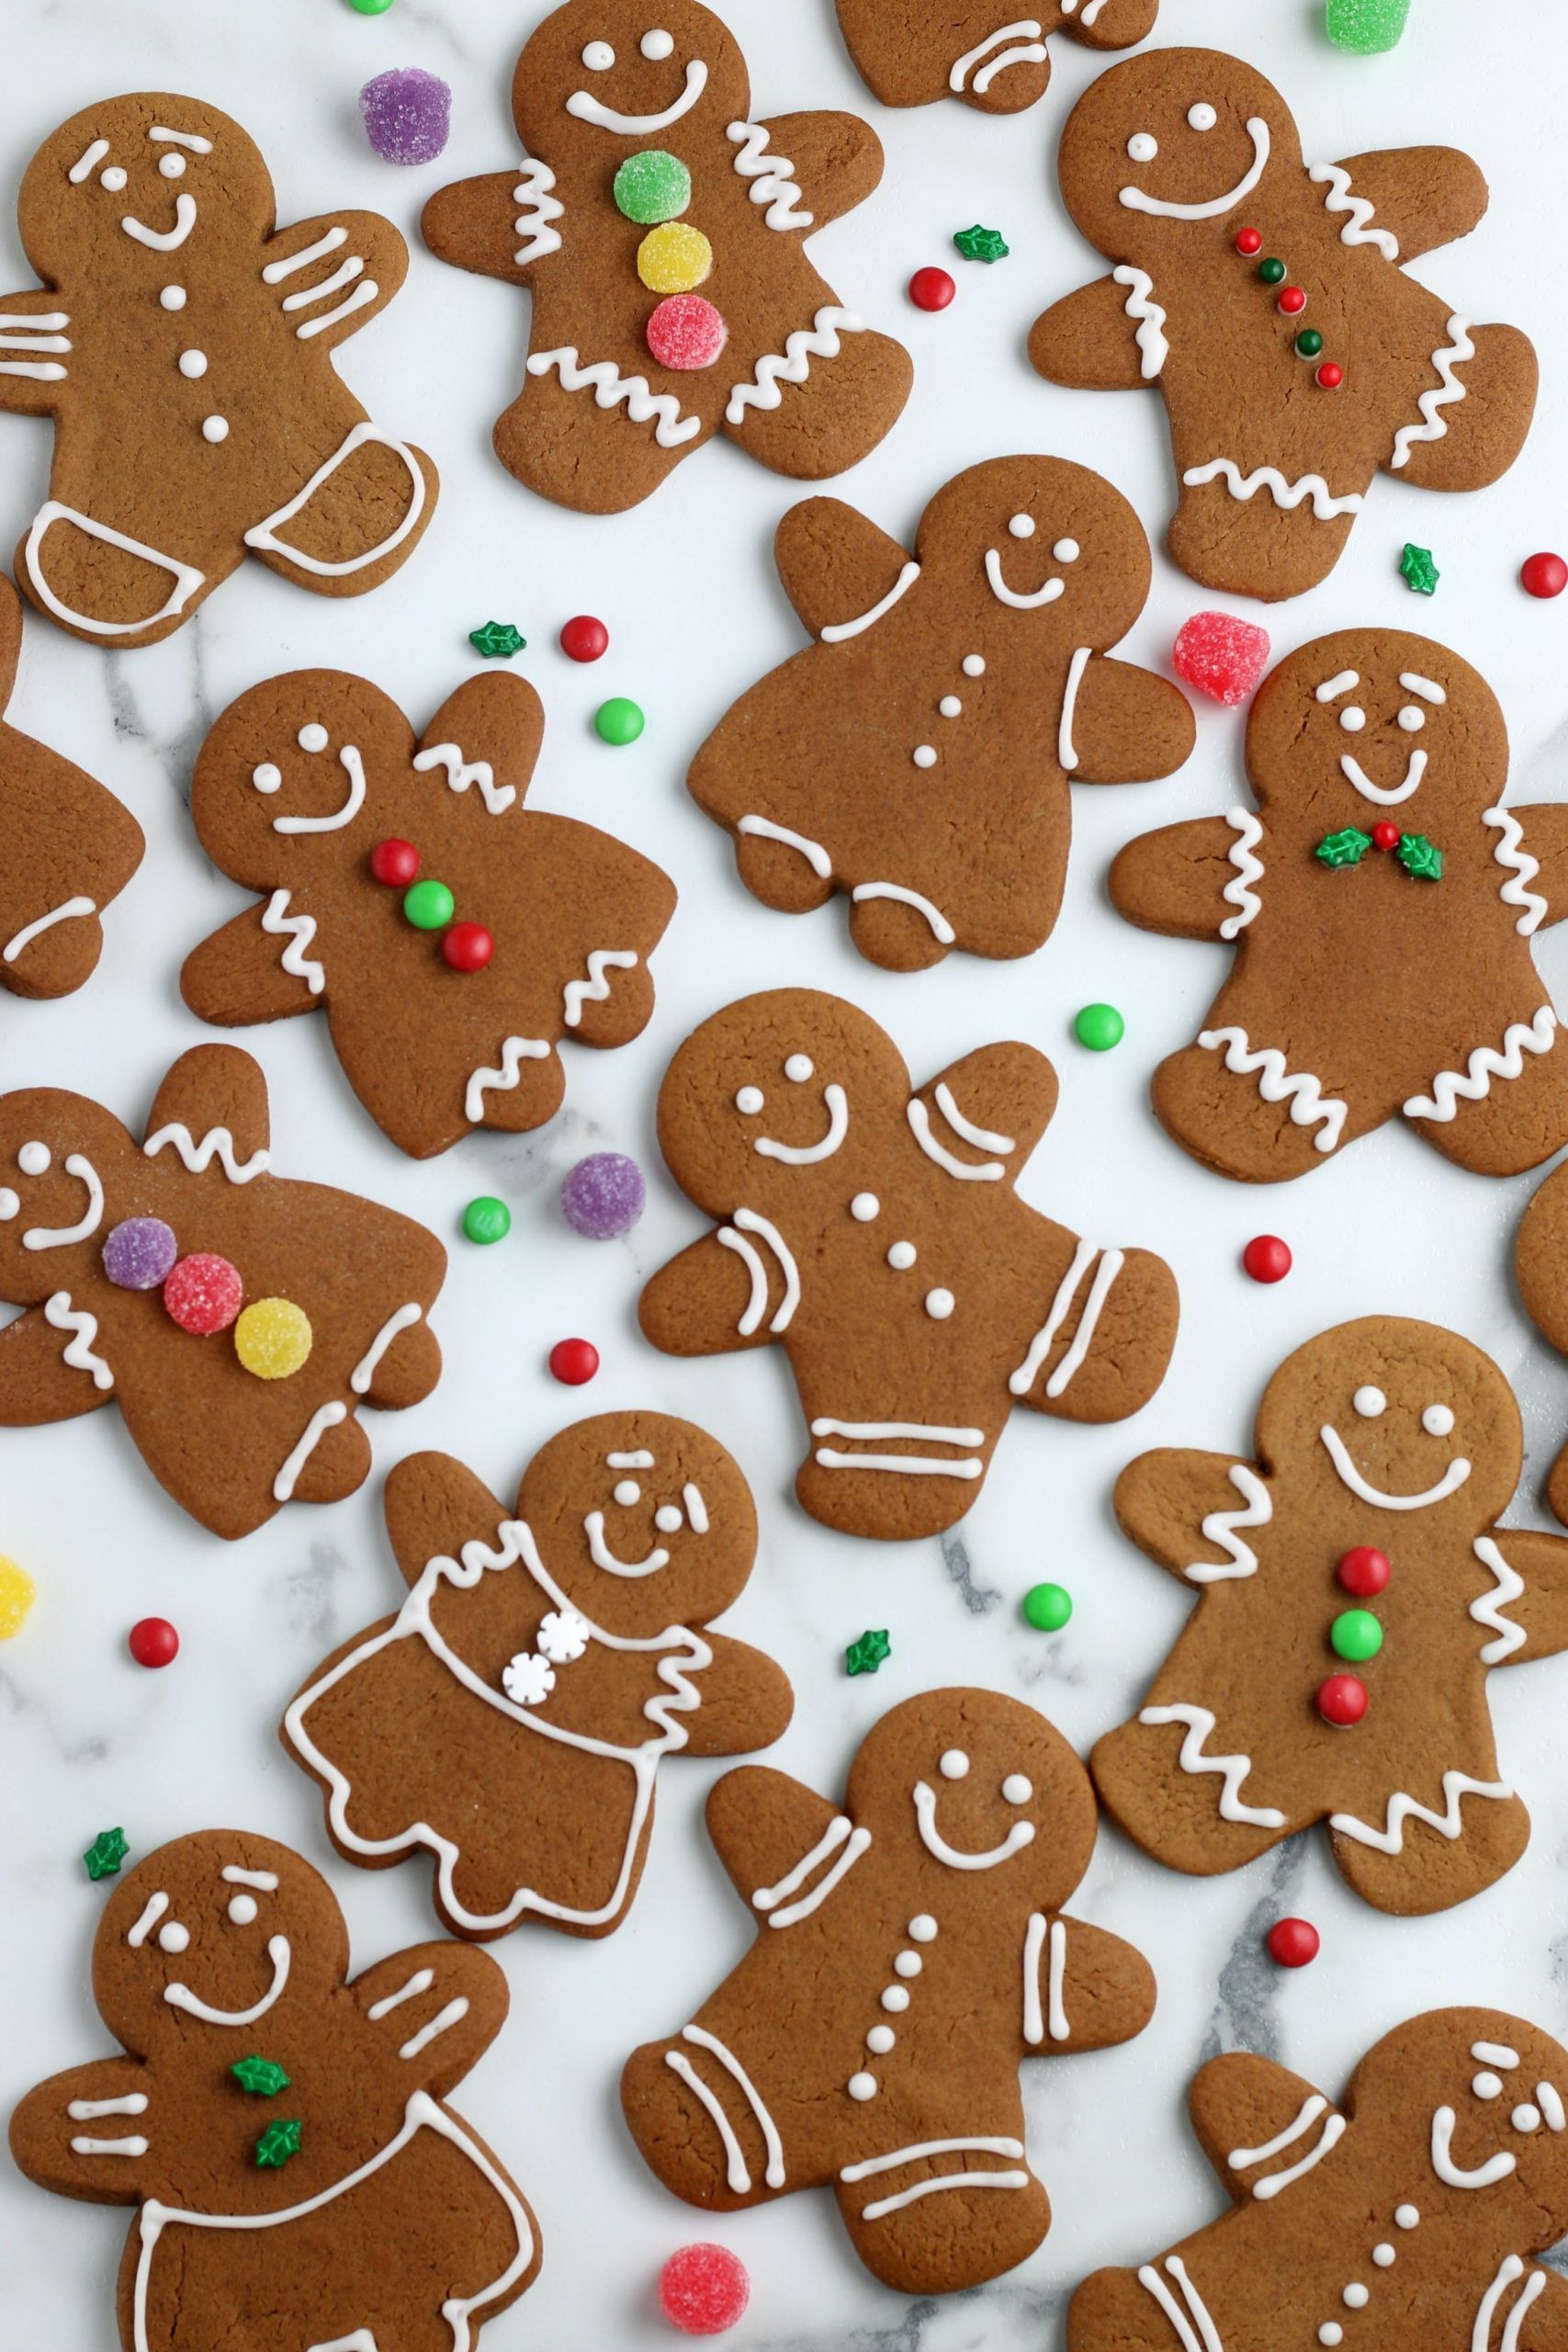 How To Make Gingerbread Man Cookies Gingerbread Cookies Recipe Recipe Gingerbread Cookies Decorated Gingerbread Cookies How To Make Gingerbread